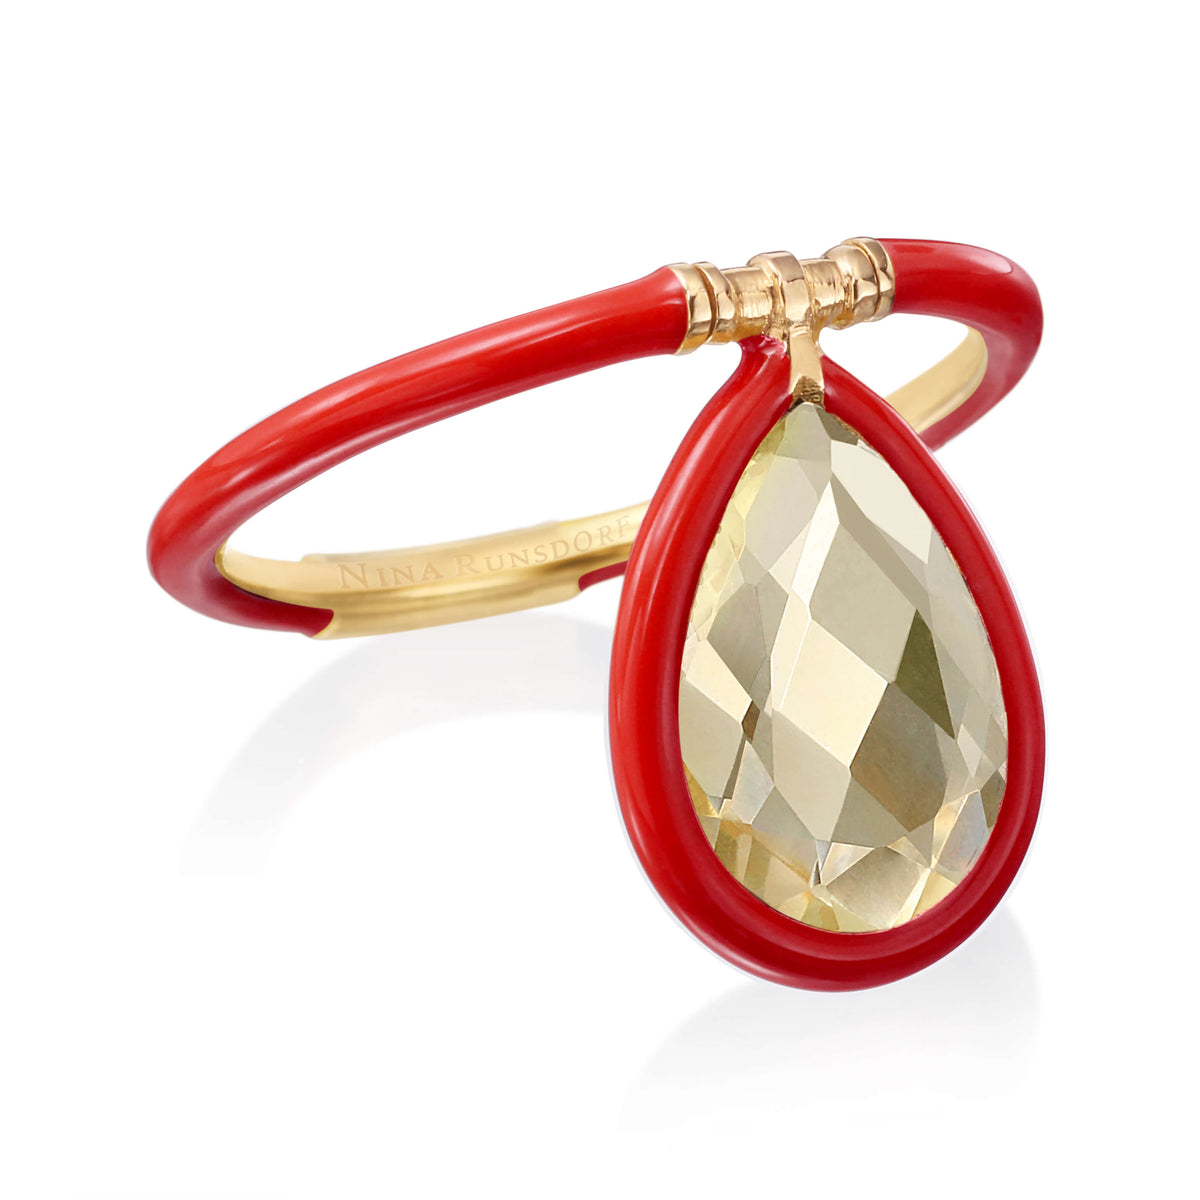 Medium Enamel Flip Ring in Red